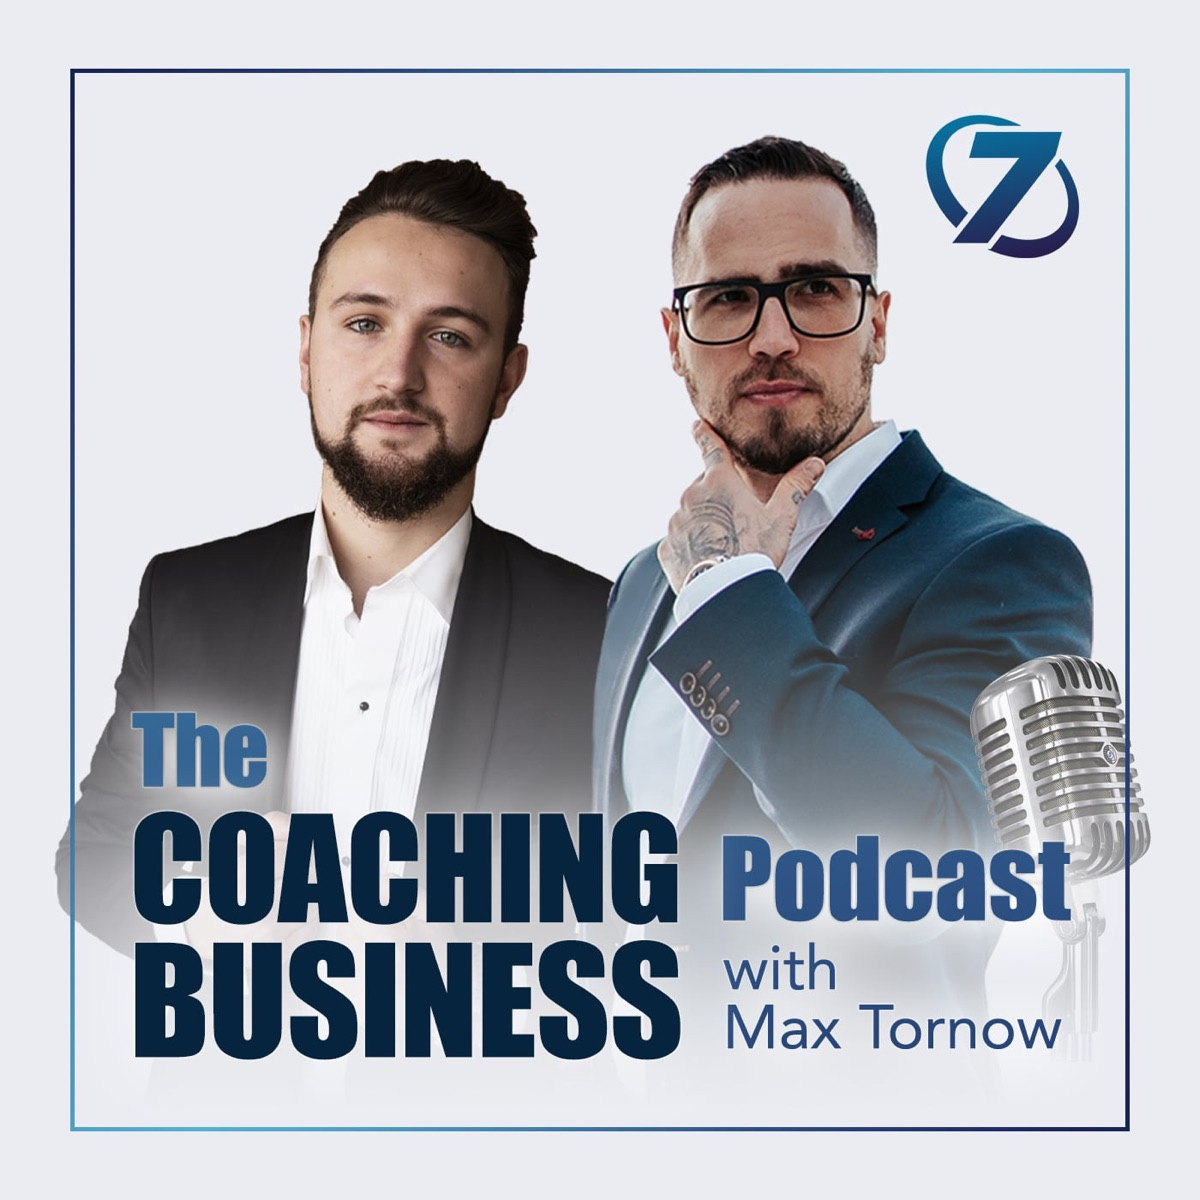 COACHING-BUSINESS PODCAST with Max Tornow and Nikita Gunkewitsch: Coaching | Business | Freedom | Motivation | Consulting | Online-Marketing